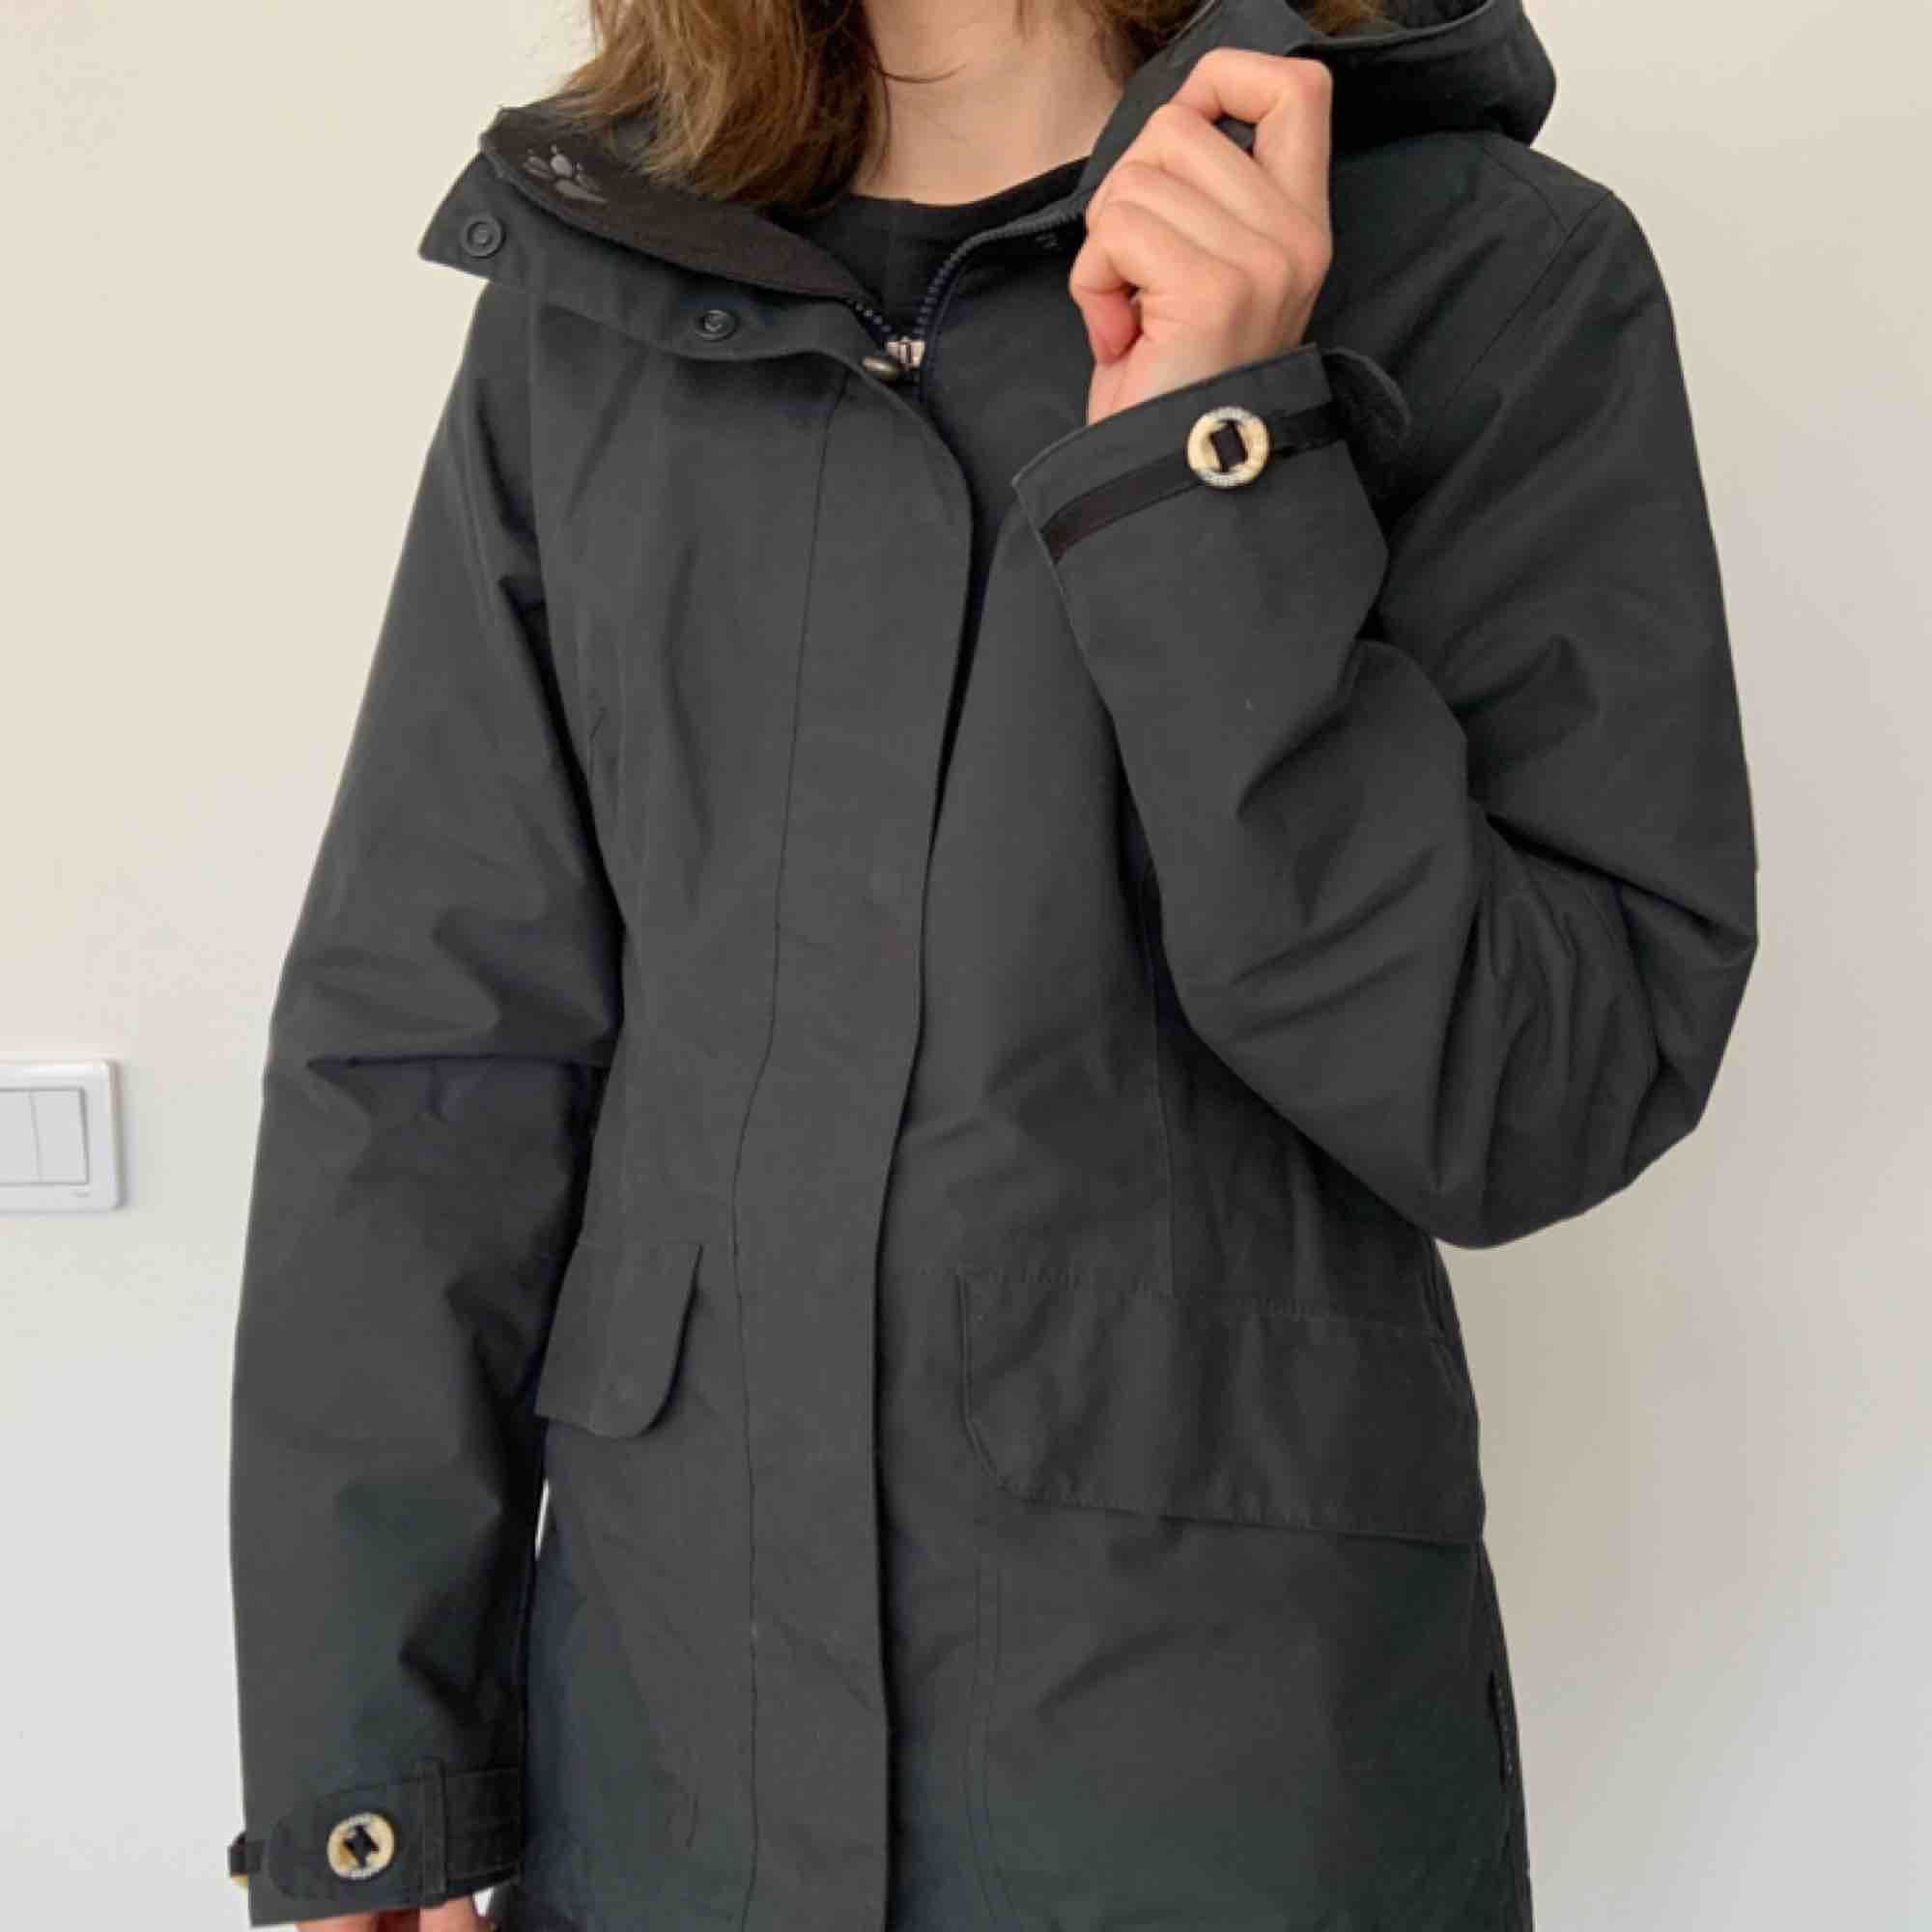 Jacket - waterproof & windproof Brand: Jack Wolfskin Size: S Colour: Charcoal Grey  Lots of nice little details, like wooden buttons.  Breathable. Weatherproof. You can make it tighter in the back.  Lots of pockets.  Hardly ever worn. Great condition. . Jackor.